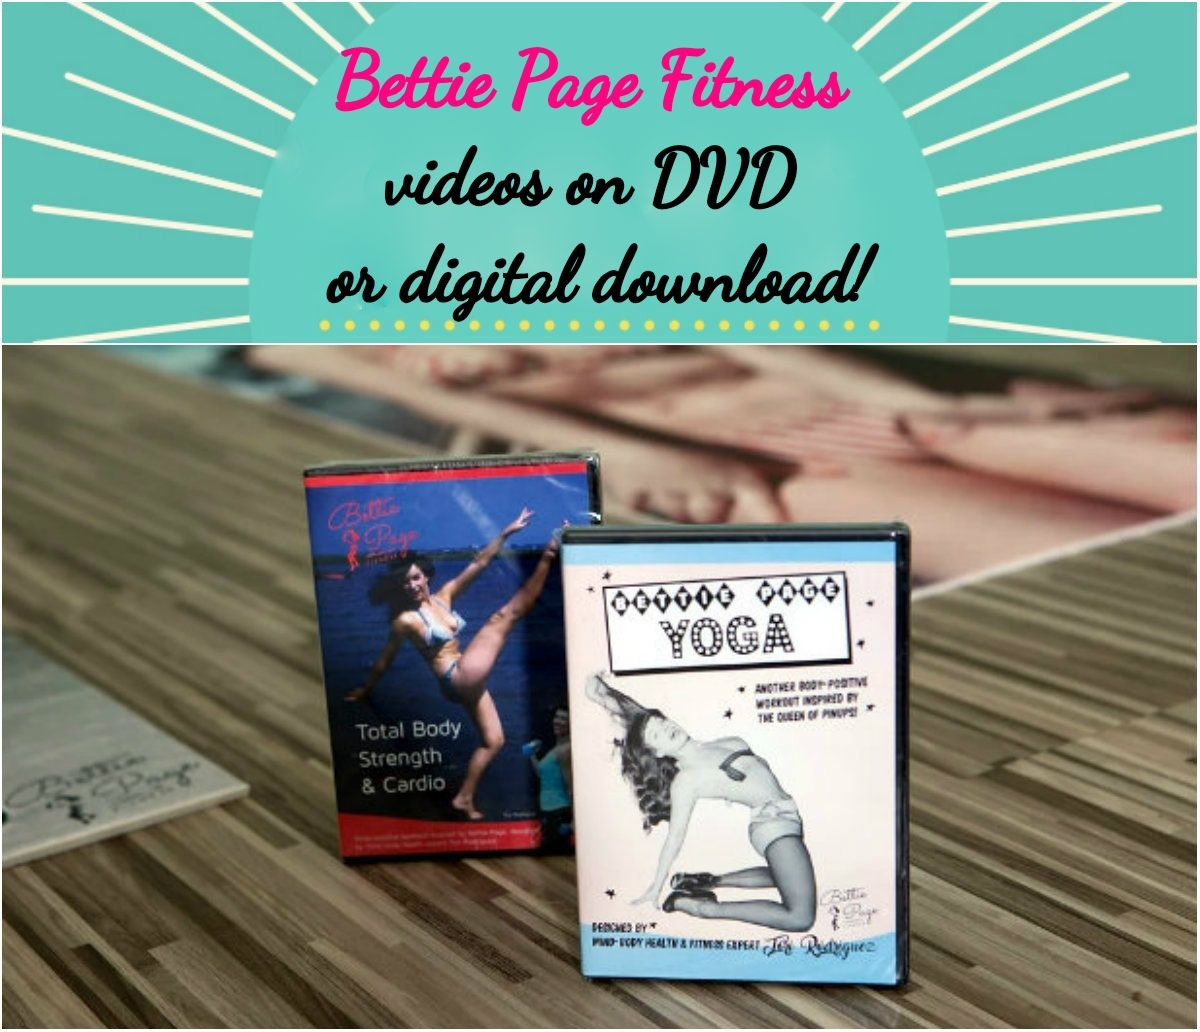 Bettie Page Fitness videos are available on DVD or digital download. Click pic to shop! (Shown here, L-R: Bettie Page Fitness: Total Body Strength & Cardio DVD; Bettie Page Yoga DVD)